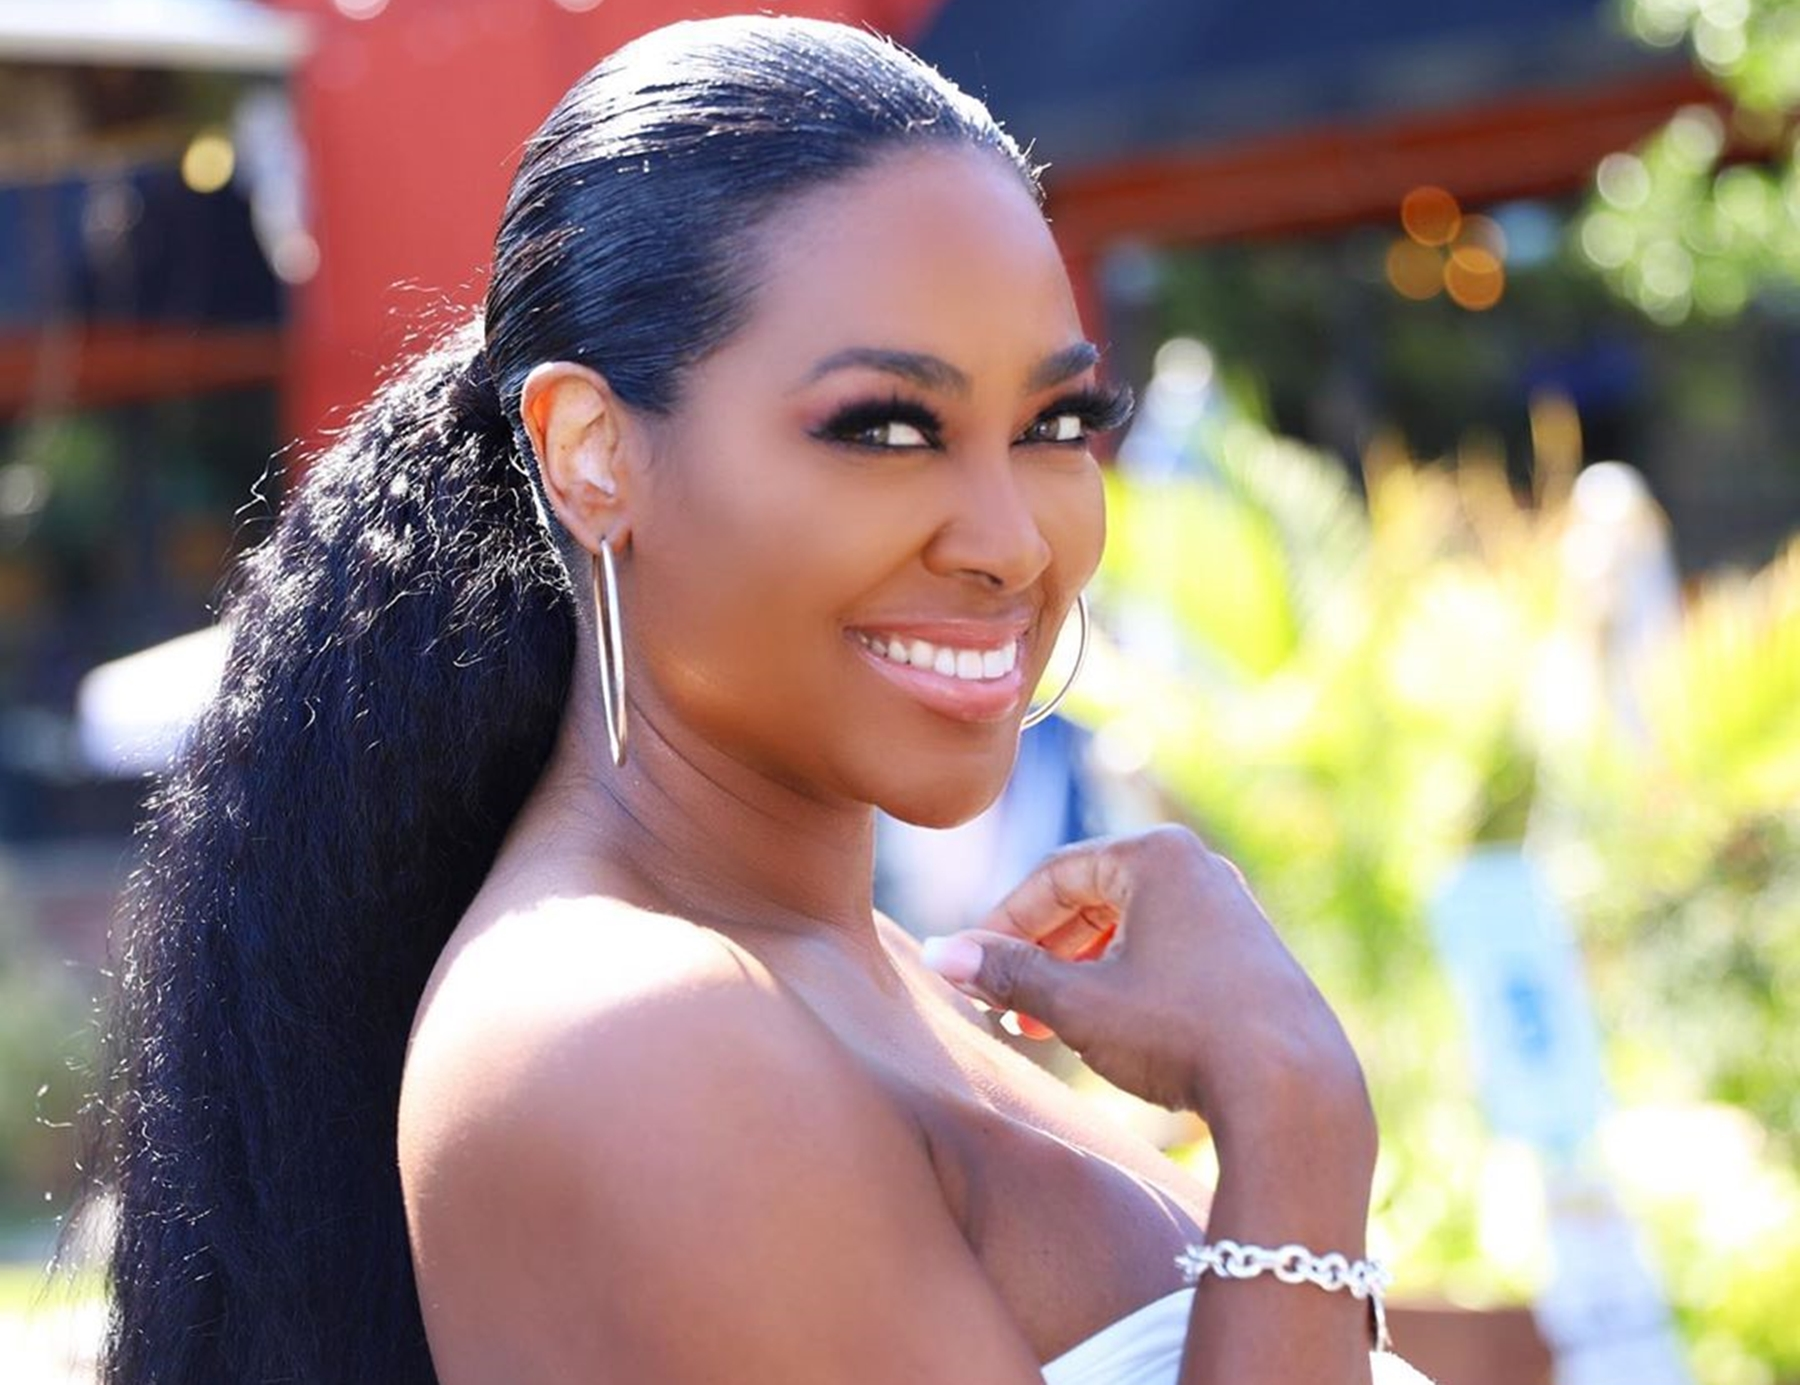 """""""kandi-burruss-supports-kenya-moore-following-her-breakup-with-marc-daly-see-kenyas-gorgeous-photo-with-brooklyn-daly"""""""